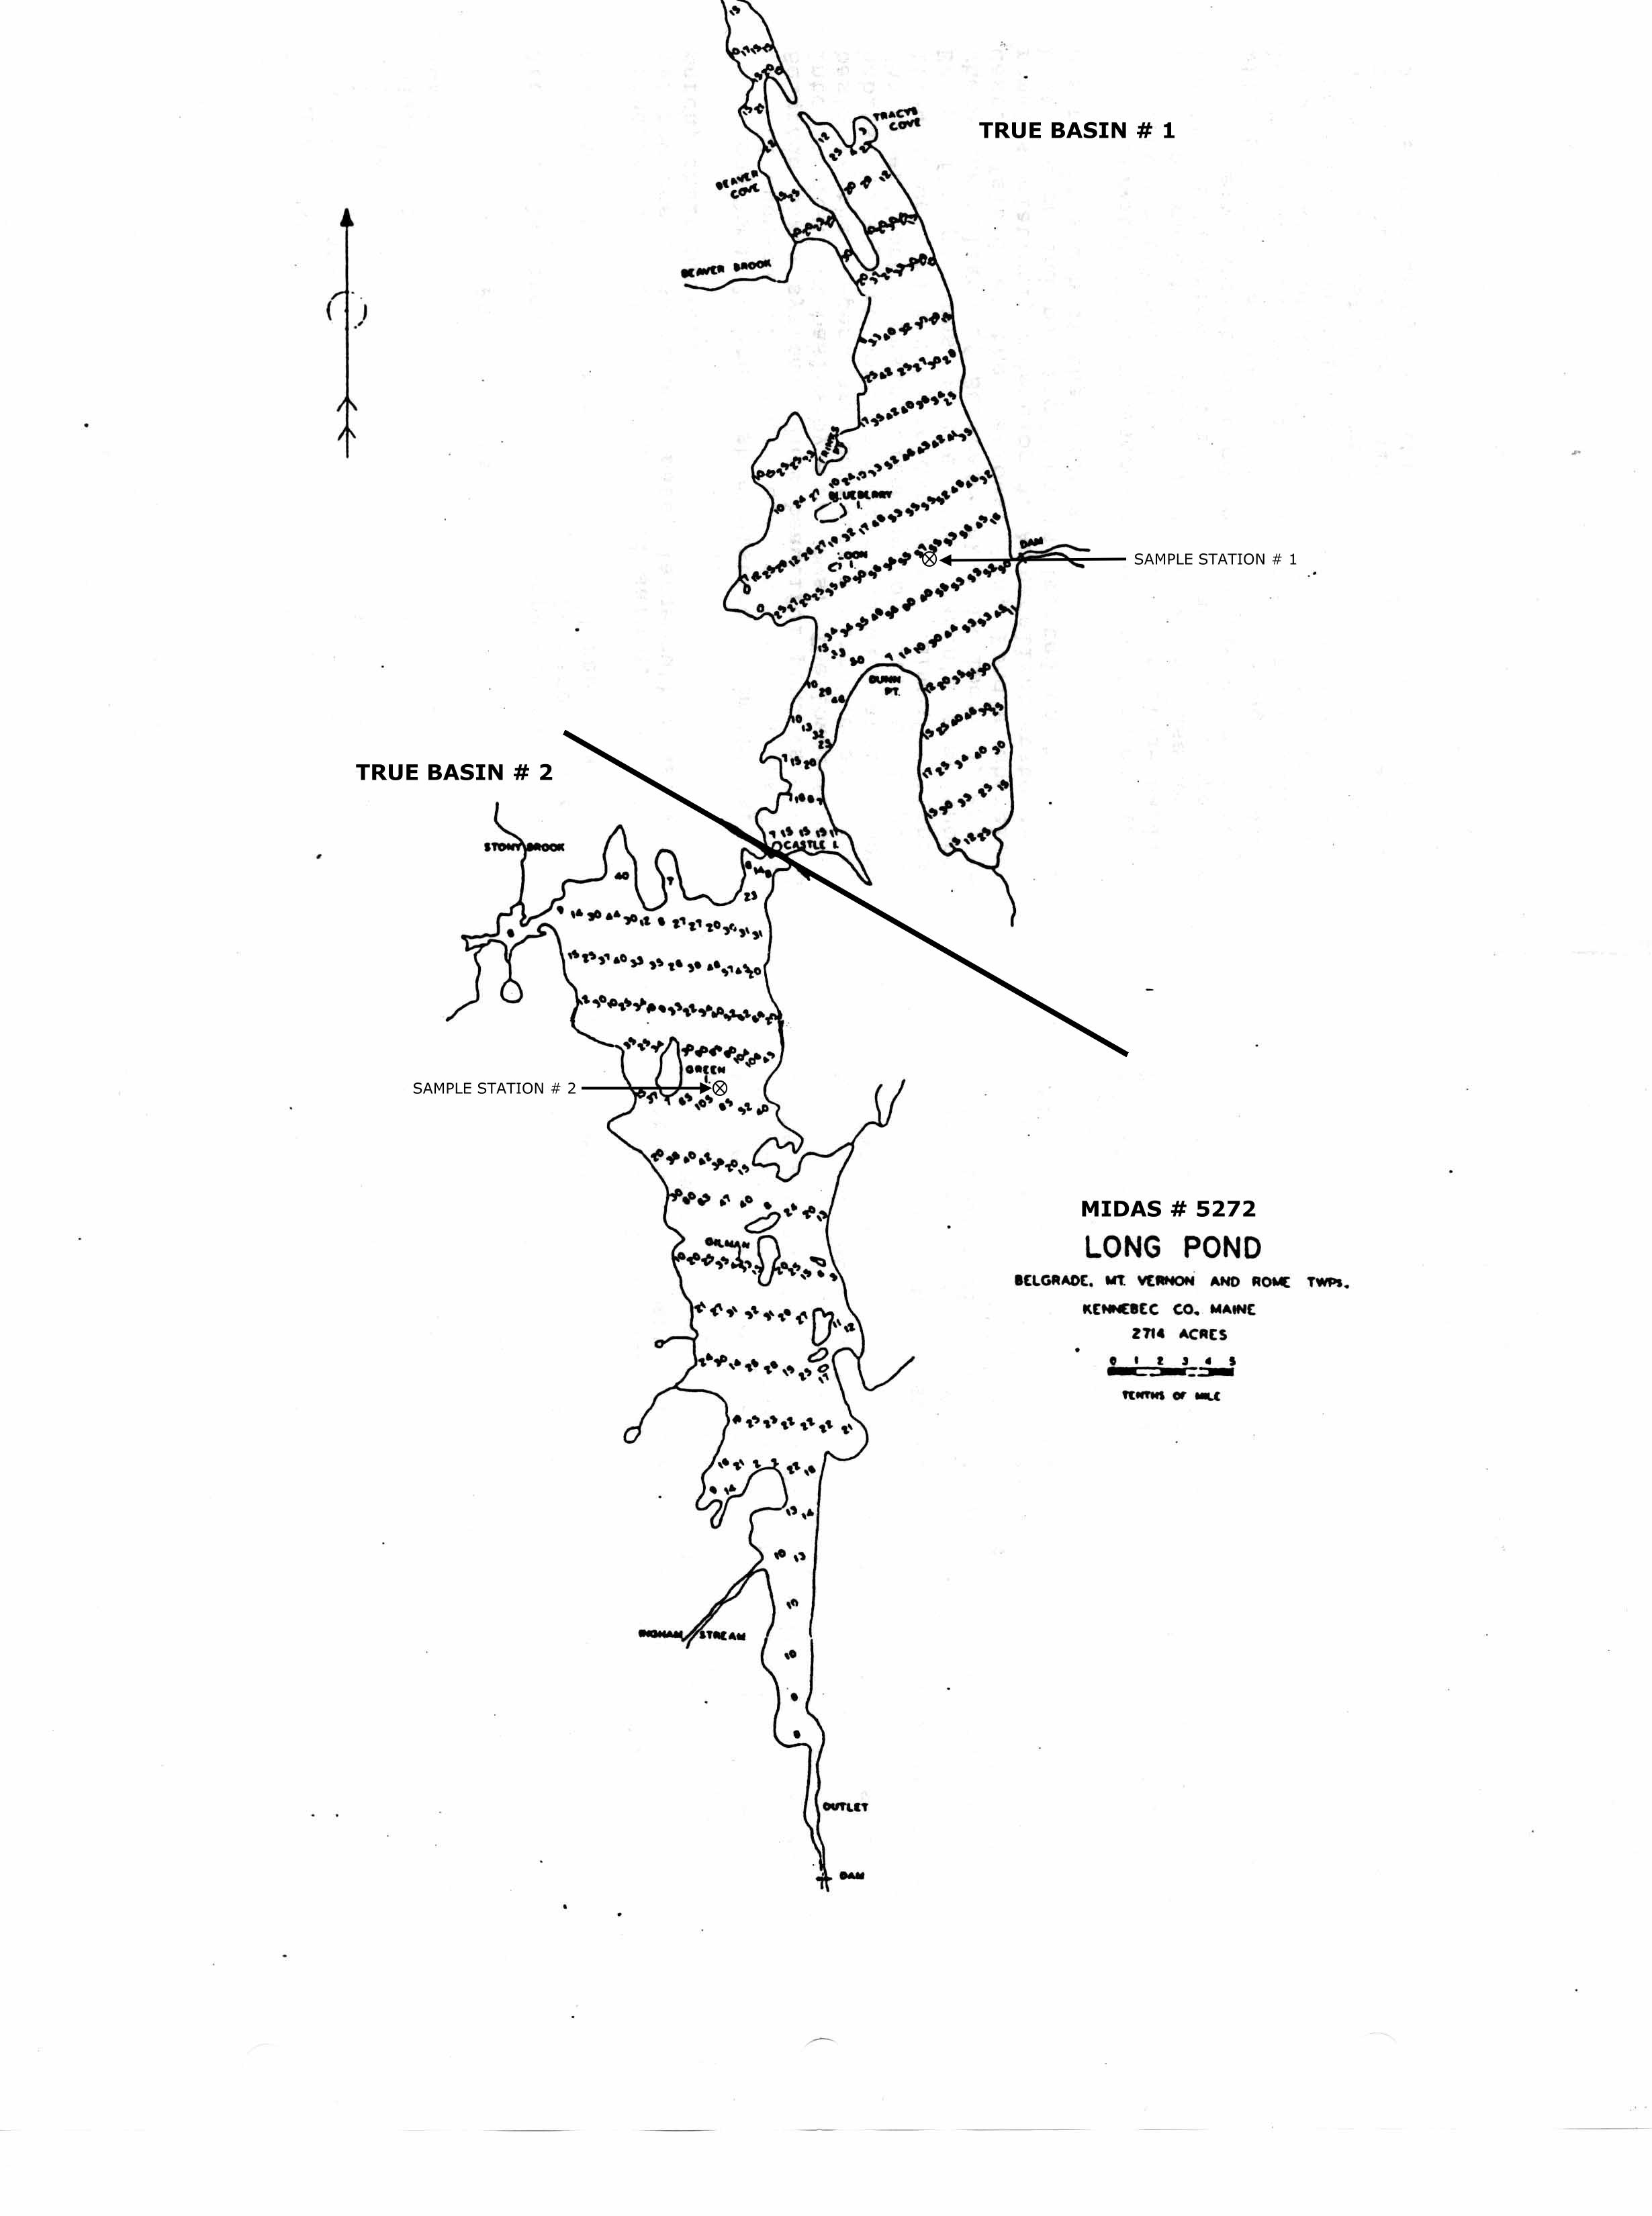 Map Of Maine Lakes.Lakes Of Maine Lake Overview Long Pond Belgrade Mount Vernon